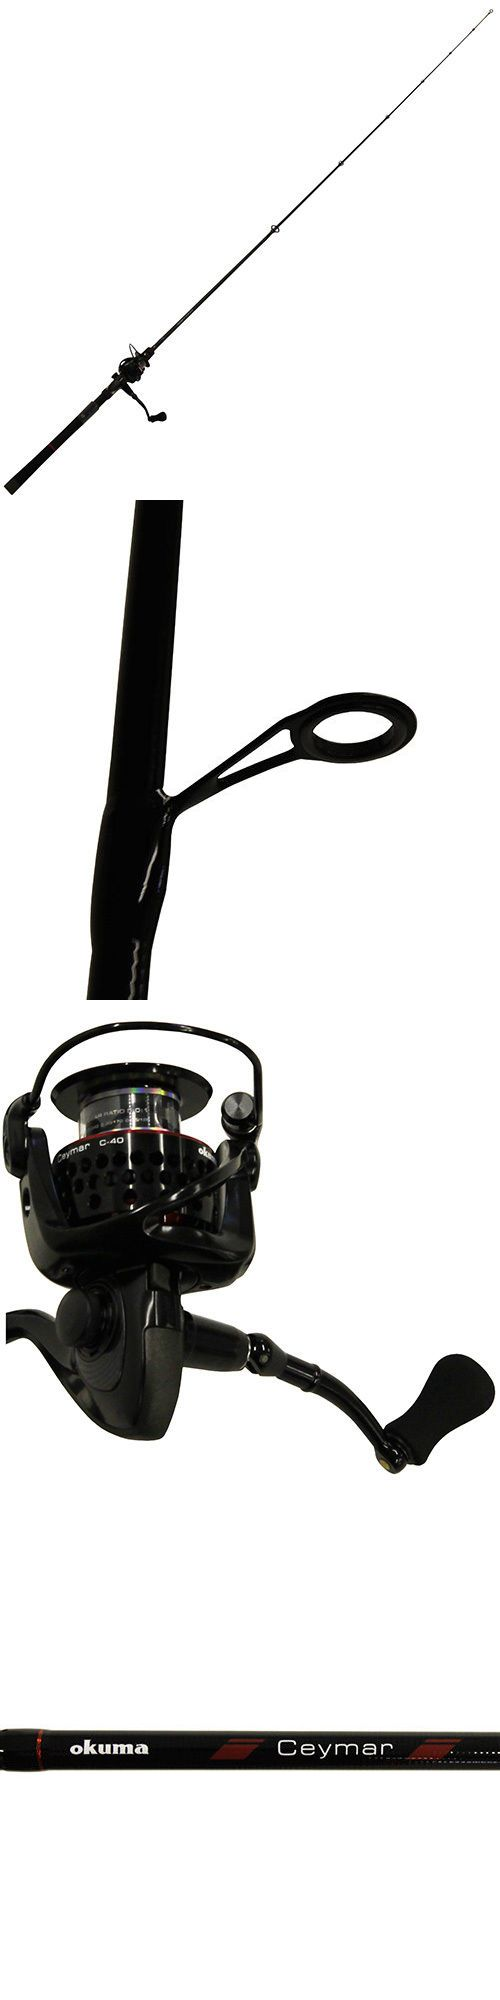 Other Rod and Reel Combos 179960: Okuma Ceymar Spinning Combo 7 Lngth 1 Pc Rod Medium Fast Power Med C-Is-701M-40 -> BUY IT NOW ONLY: $109.95 on eBay!